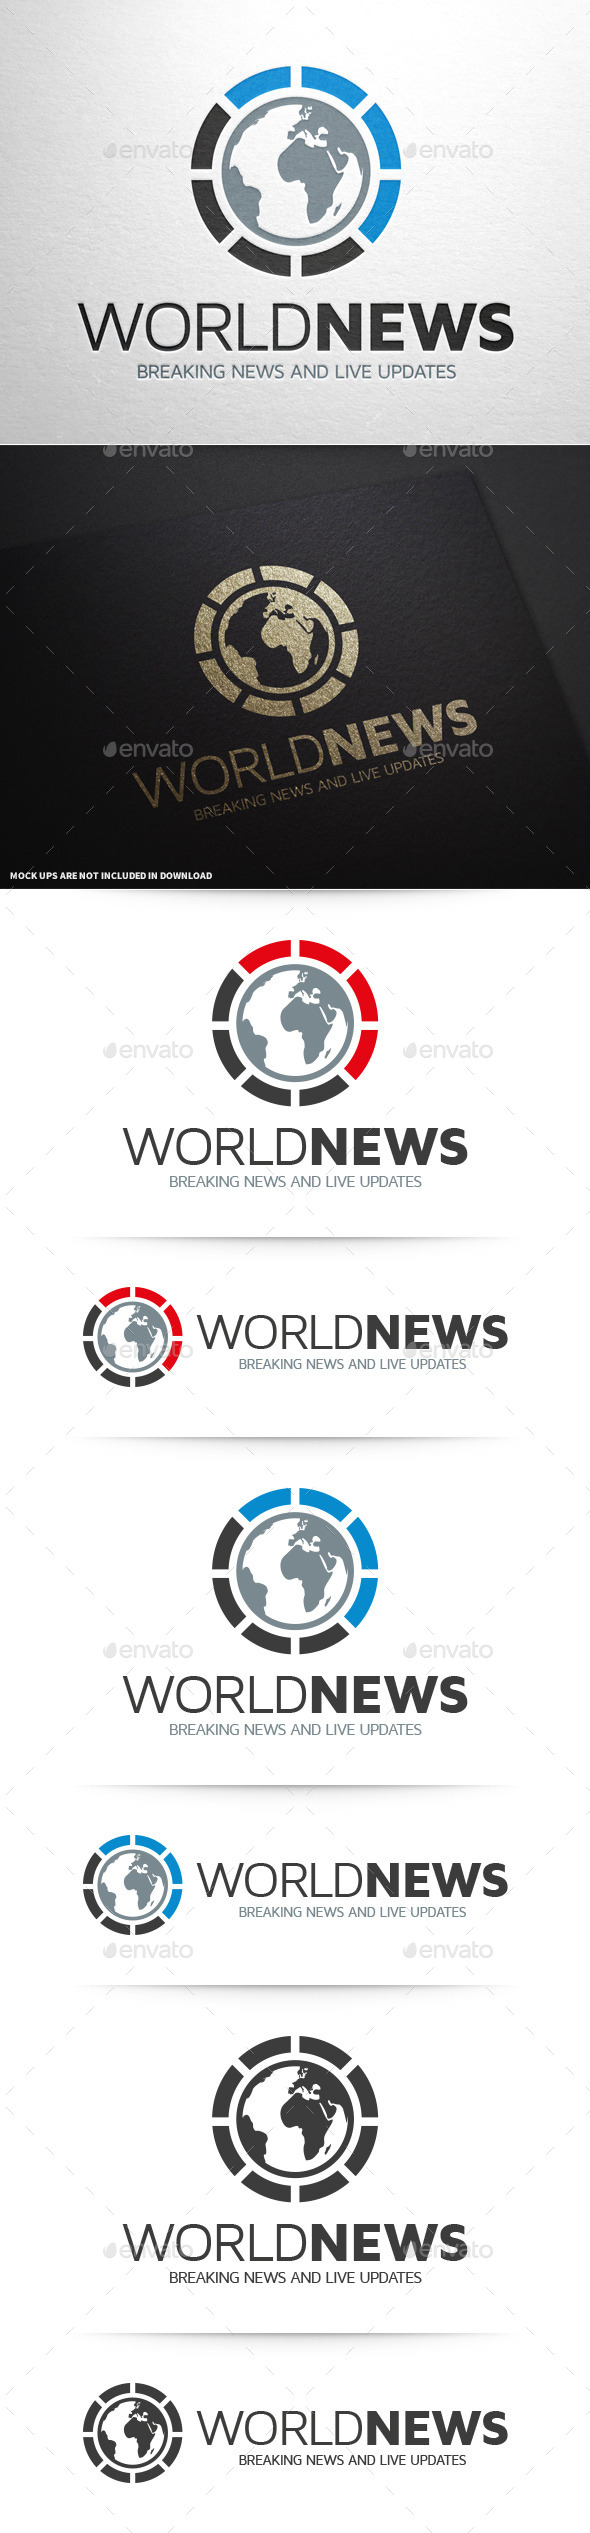 World News Logo Template